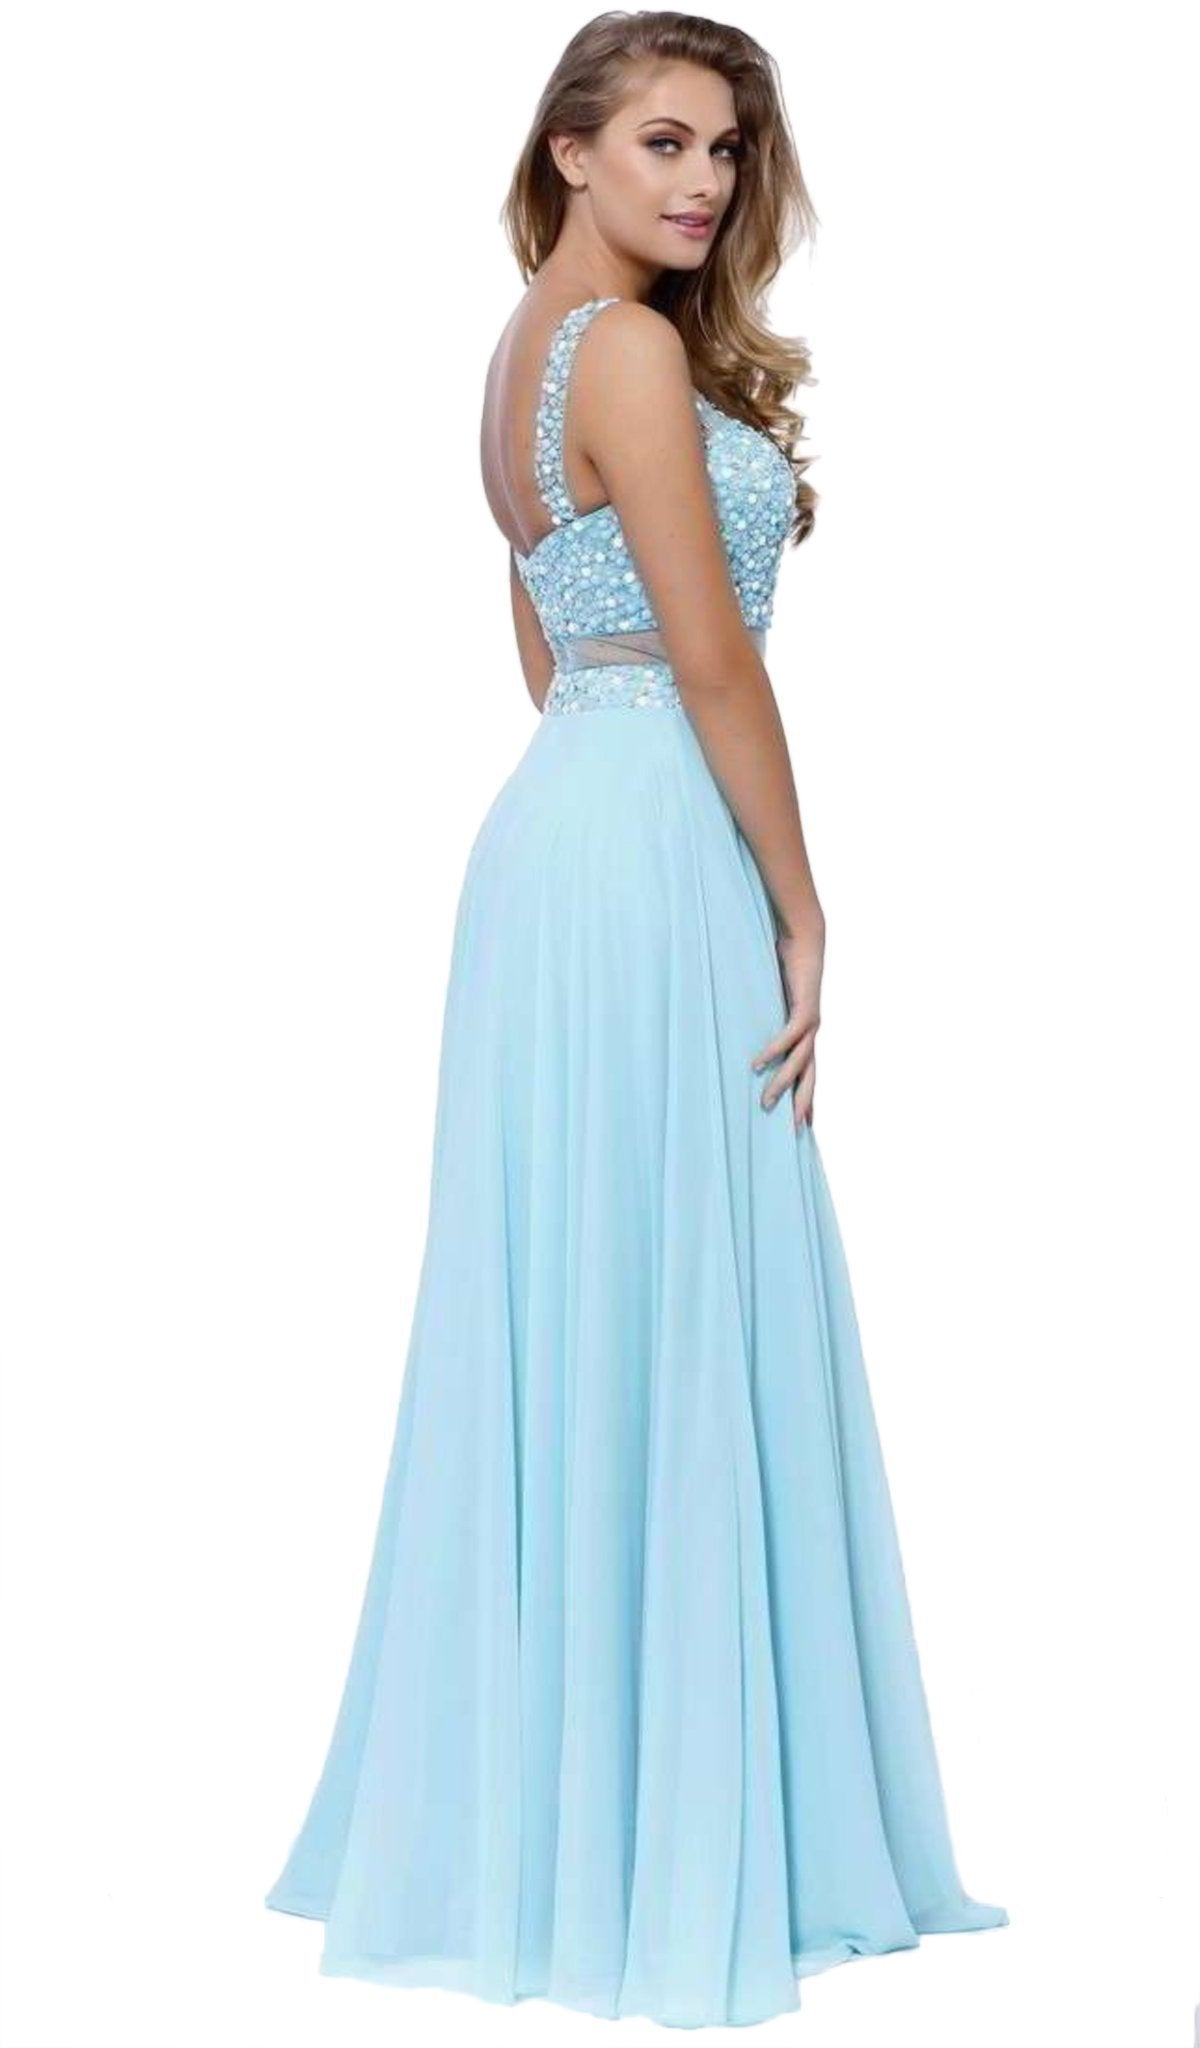 Nox Anabel - Beaded Long Evening Gown 8251SC